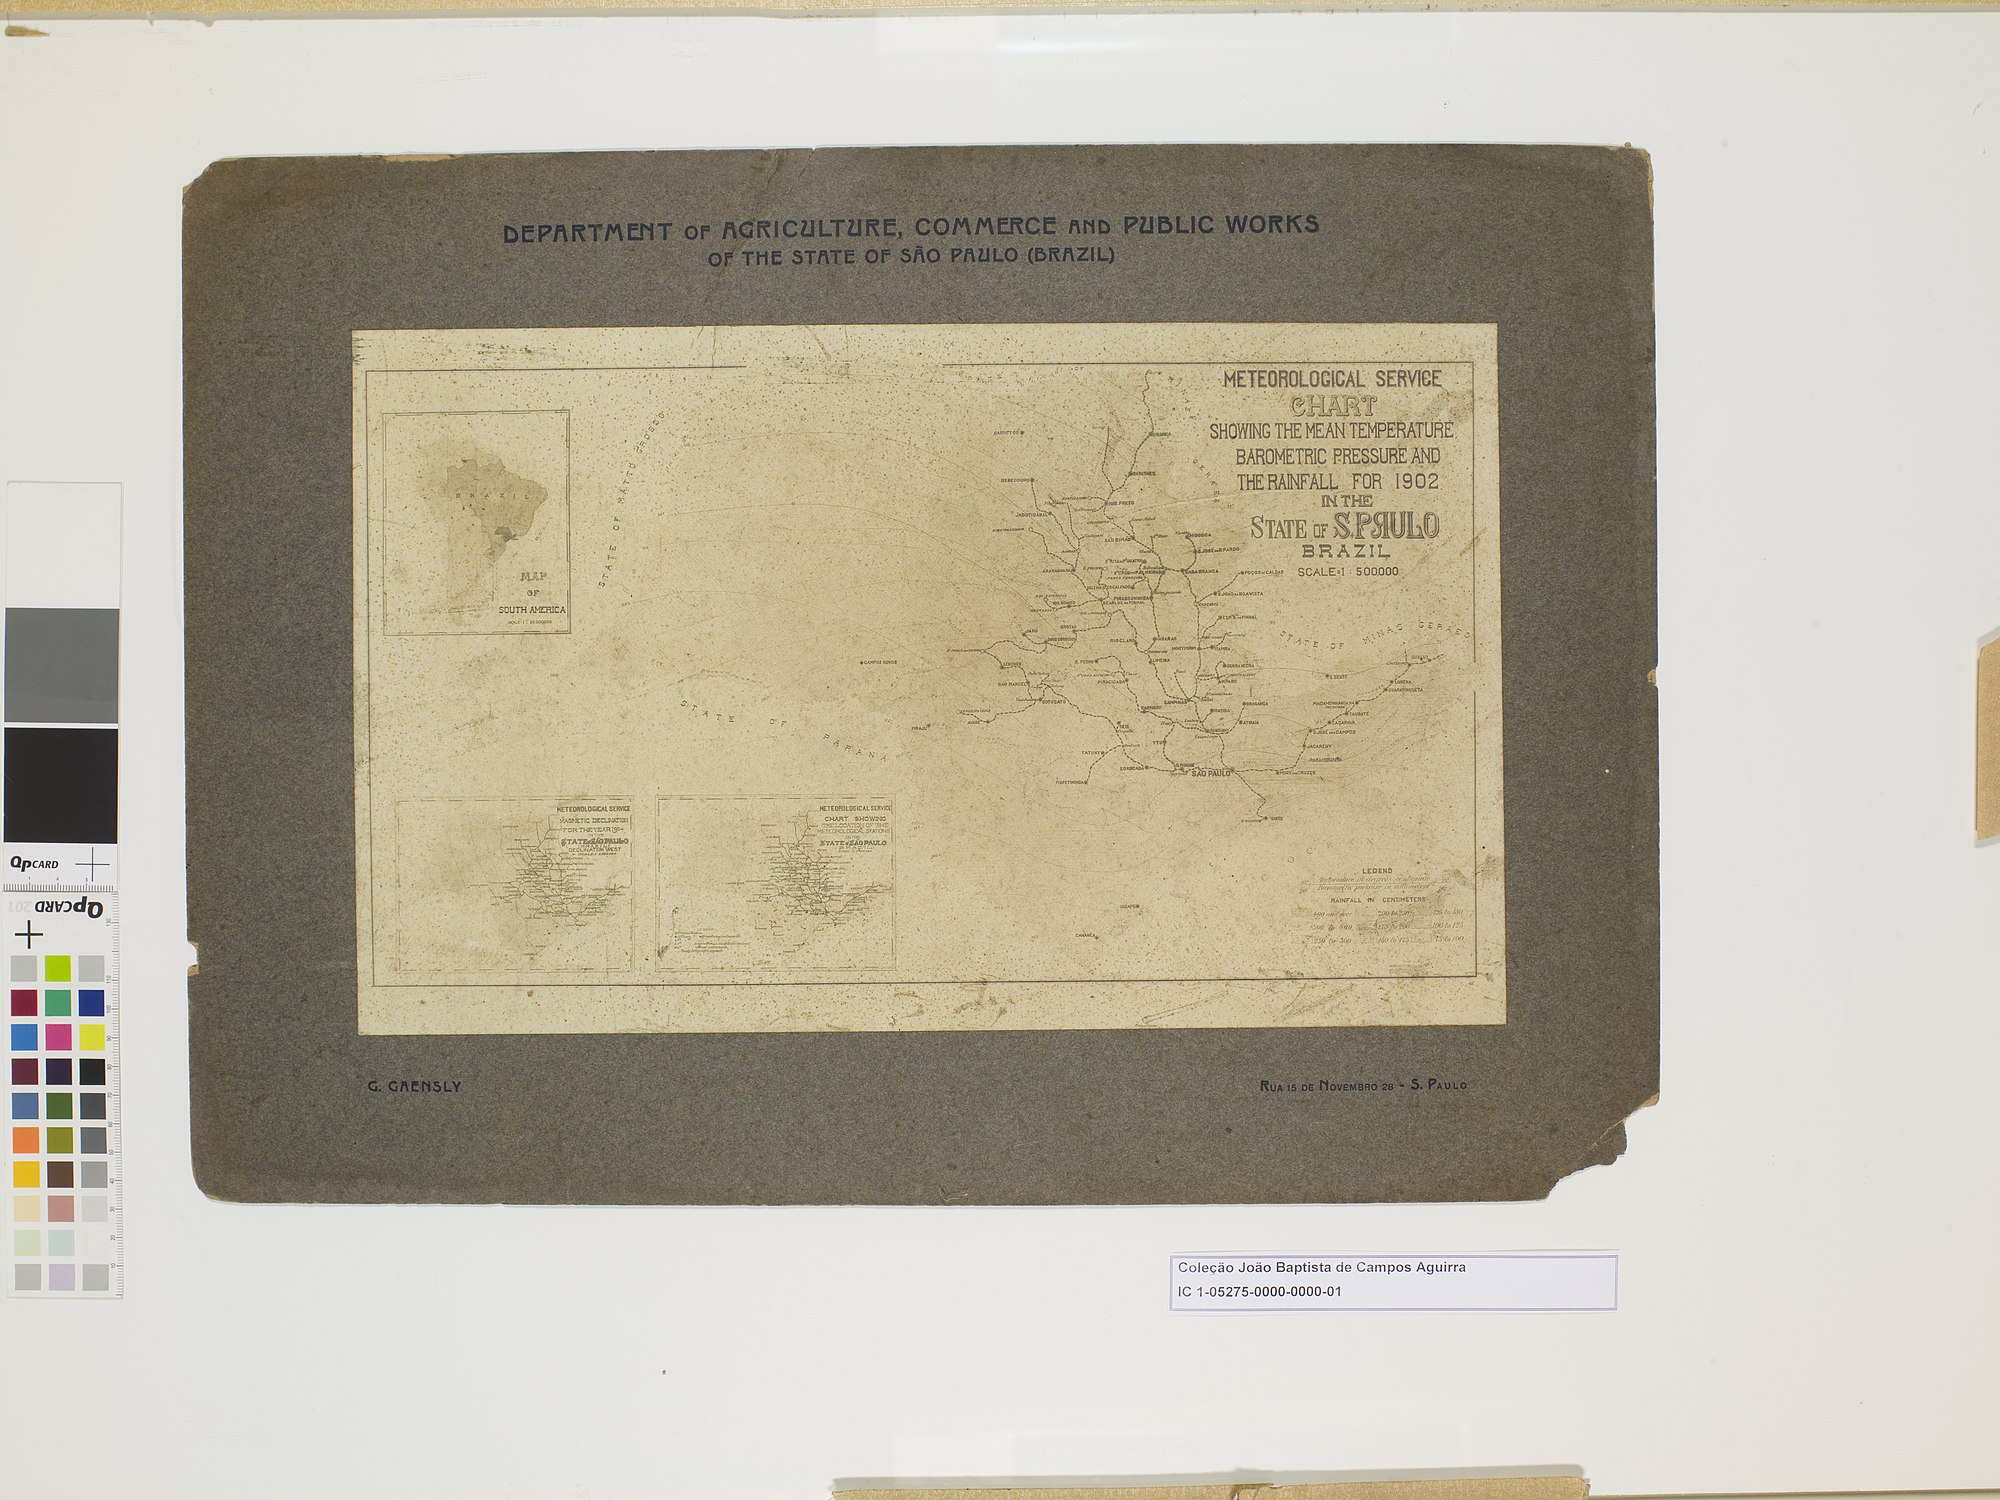 Reprodução de mapa: Meteorological Service Chart Showing The Mean Temperature, Barometric Pressure And The Rainfall For 1902 In The State Of S. Paulo Brazil